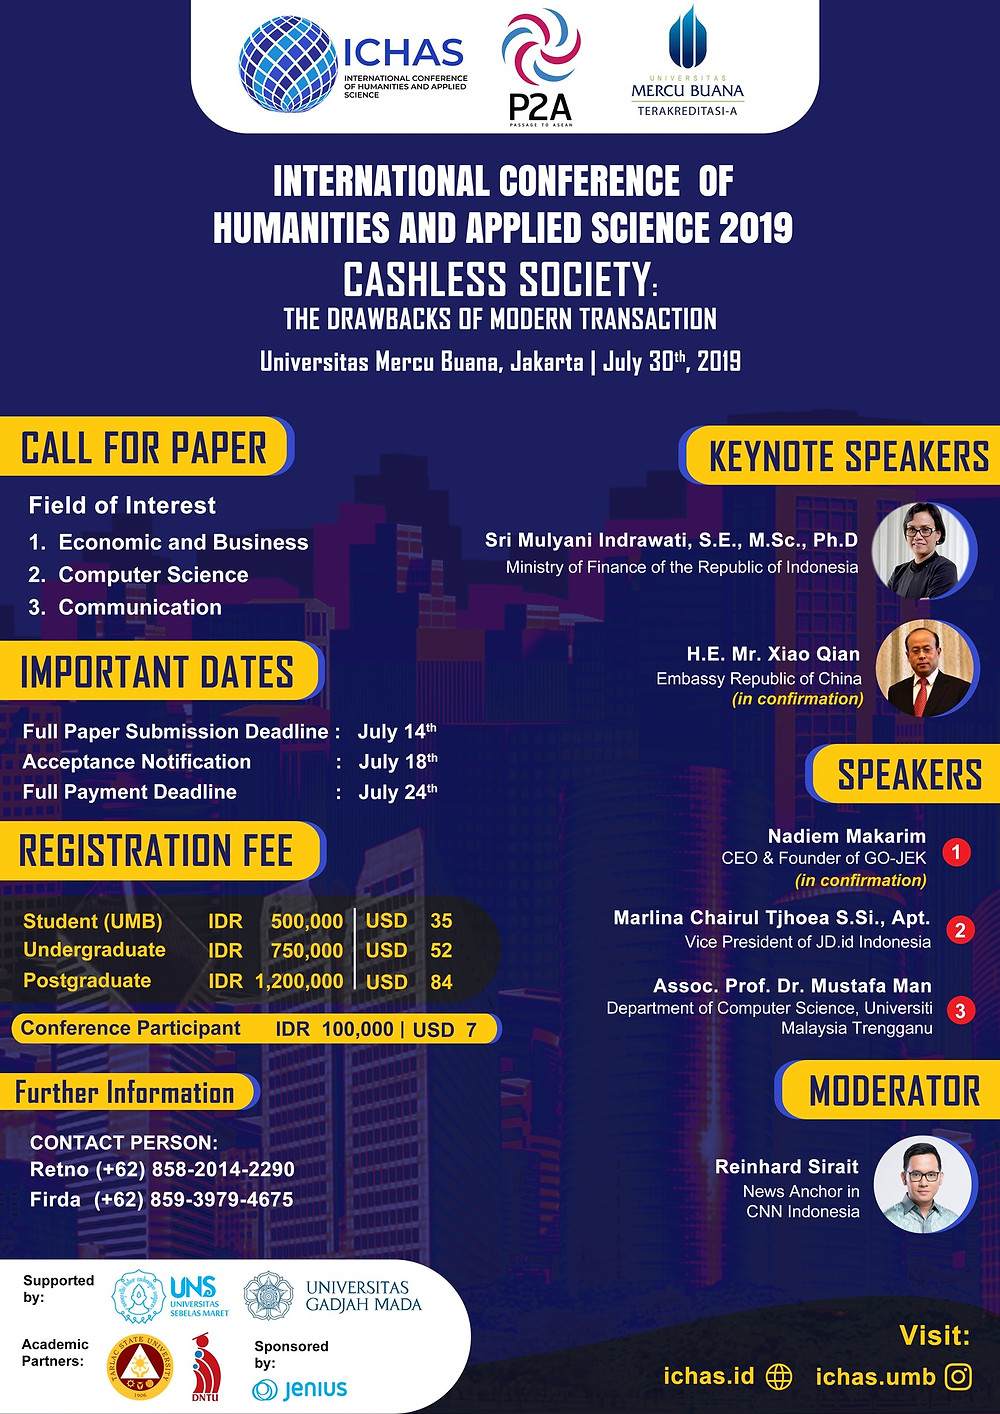 "Hello! We have a good news for you.  [CALL FOR PAPERS]  Department of Management and  Informatics of Universitas Mercu Buana is pleased to announce The International Conference and Seminar.  INTERNATIONAL CONFERENCE OF HUMANITIES AND APPLIED  SCIENCE (ICHAS 2019)  This event will consist of International Conference and Seminar with:   Theme :  ""Cashless Society: The Drawbacks of Modern Transaction"" Sub-theme :  1. Non-Cash Movement by Indonesian Government 2. Shifting Paradigms in Payments Behavior  Field of Interest: 1. Economic and Business 2. Computer Science 3. Communication  July 30th, 2019 - Universitas Mercu Buana, Jakarta Barat.   The details please kindly visit as at ichas.id or through our Instagram: ichas.umb  For further information: Retno (+62) 858-2014-2290 Firda (+62) 859-3979-4675   Prepare yourself and join us now!"